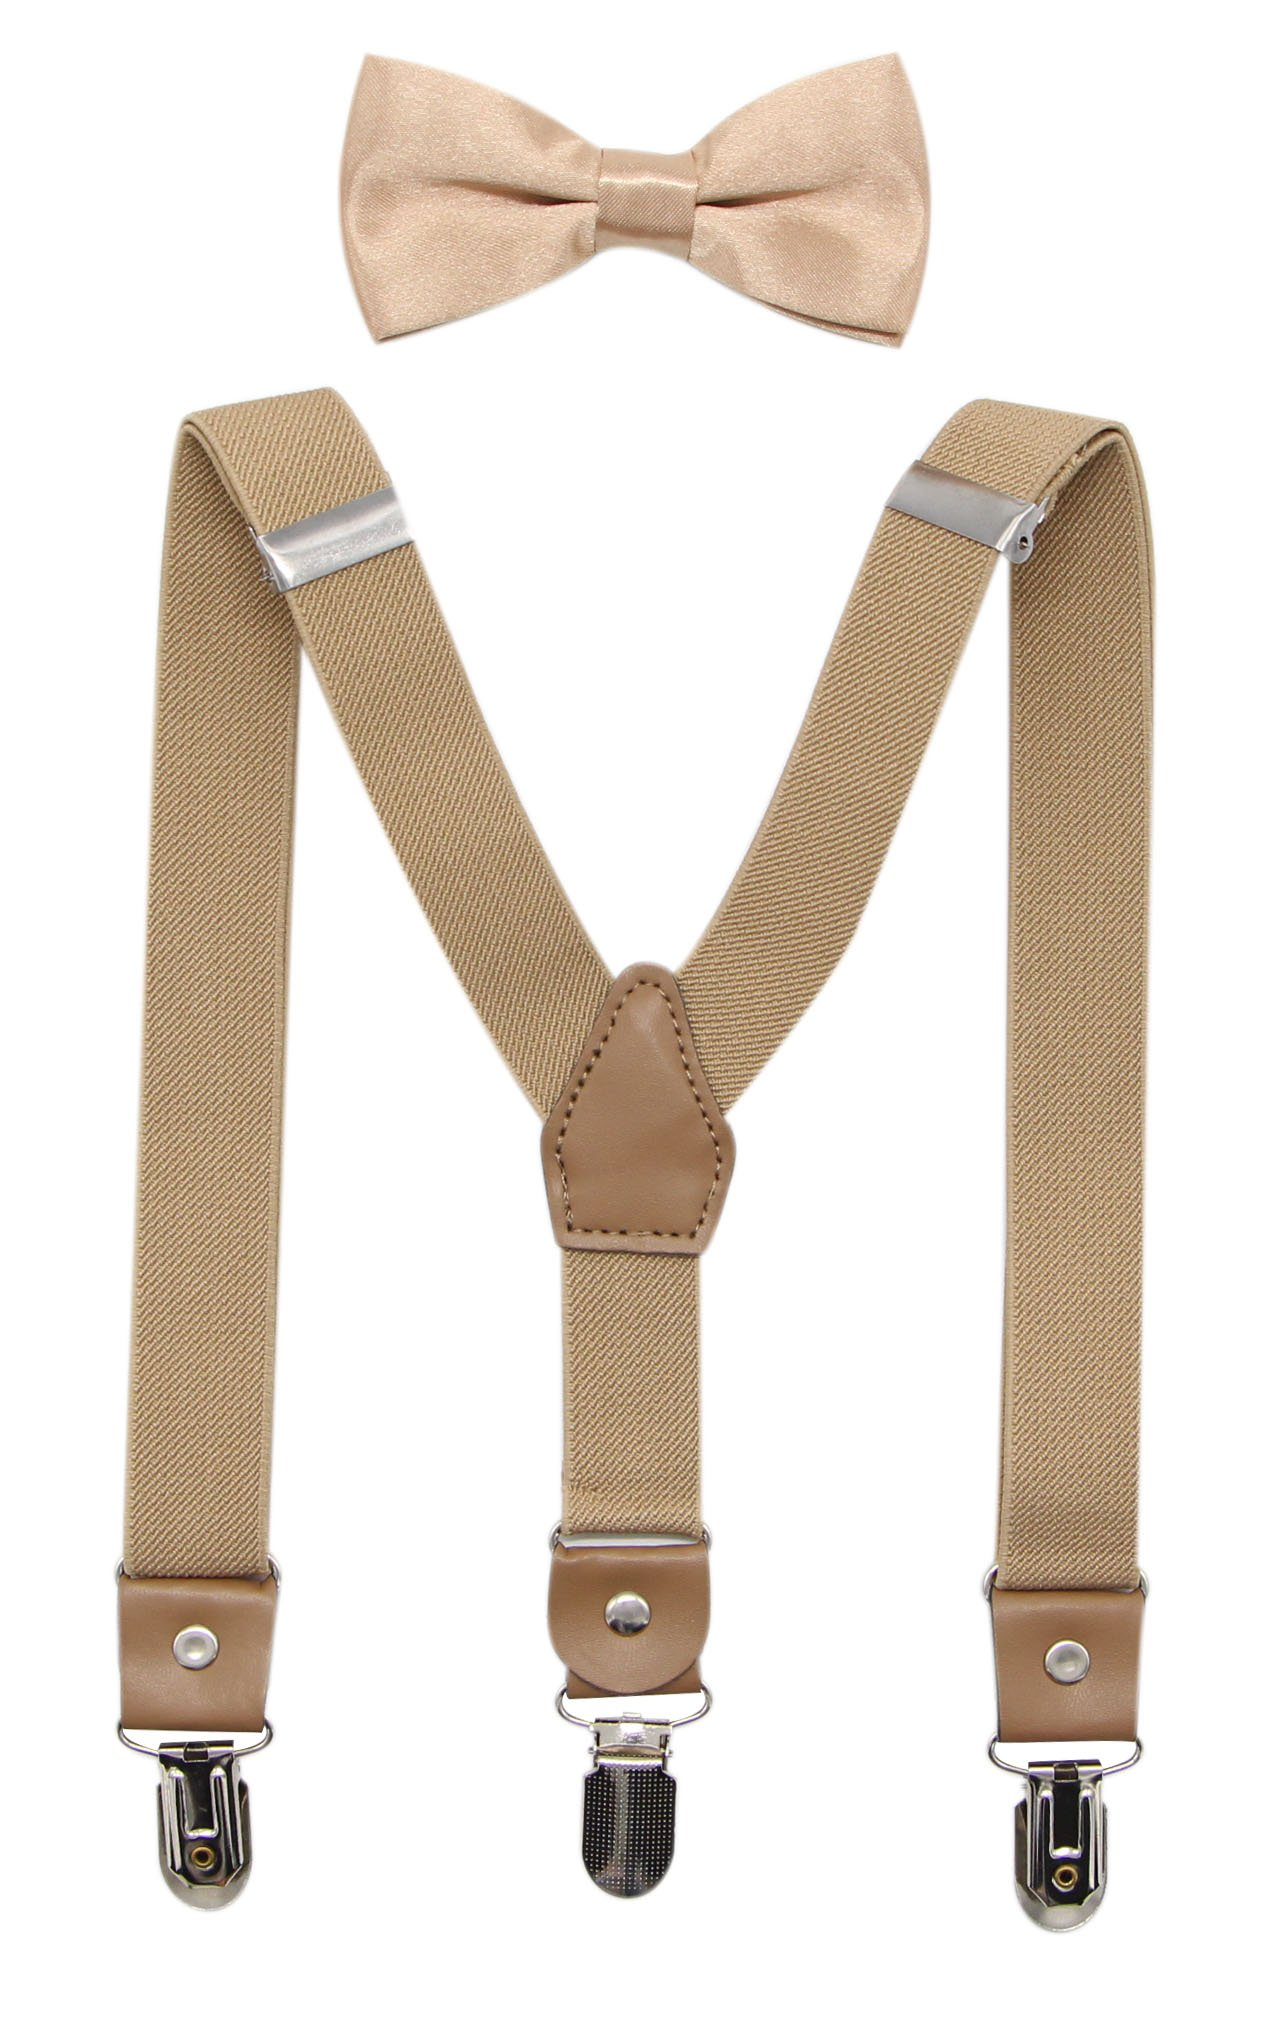 Bioterti Suspenders and Bow Tie For Toddler Kids Boys Adjustable With Strong Clips (Champagne)